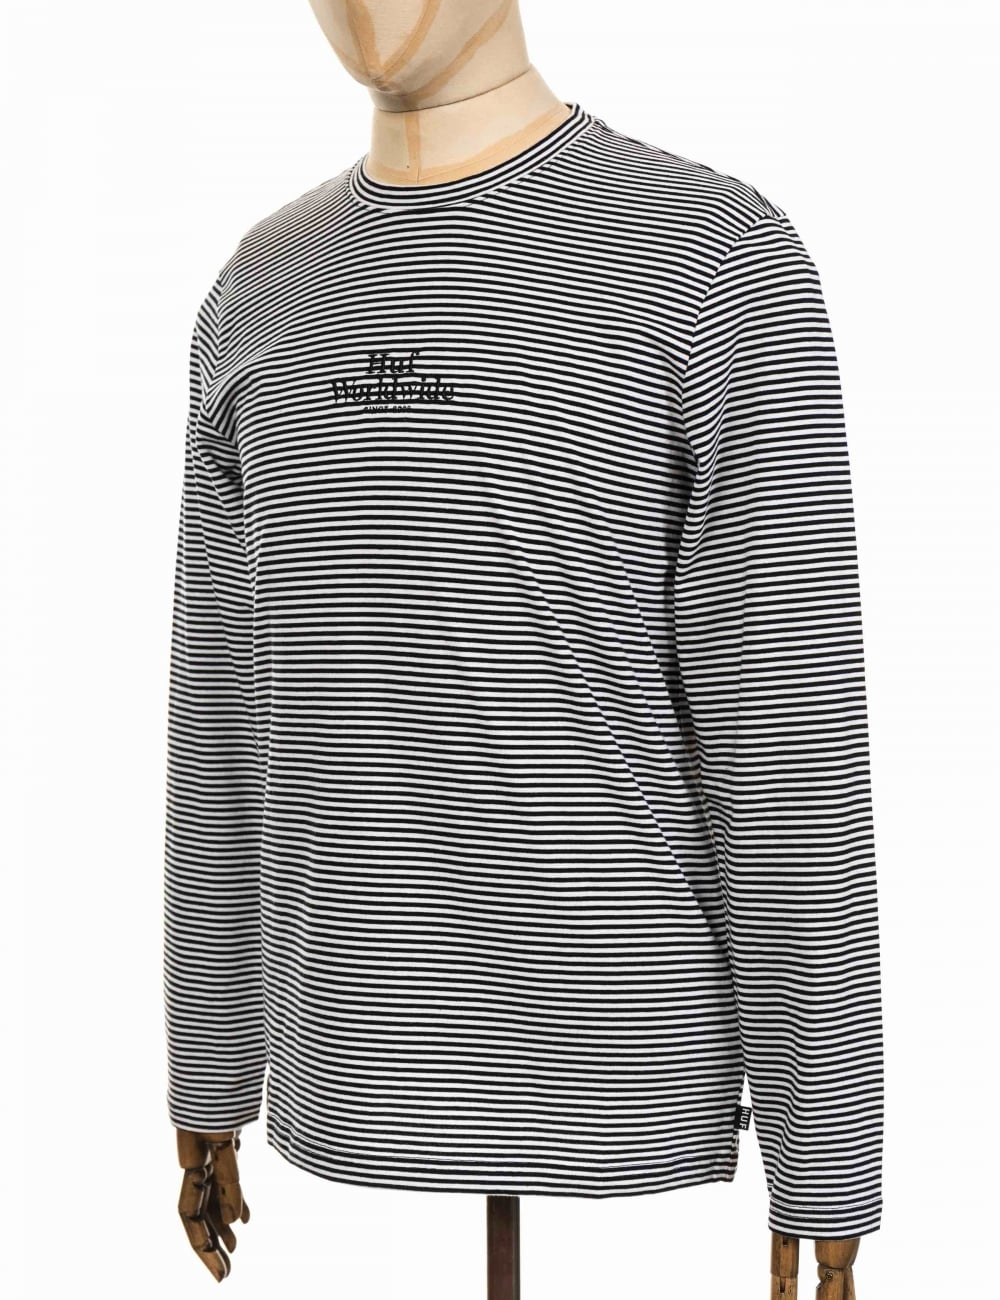 8edff323dd Huf L/S Royal Stripe T-shirt - Black/White - Clothing from Fat ...